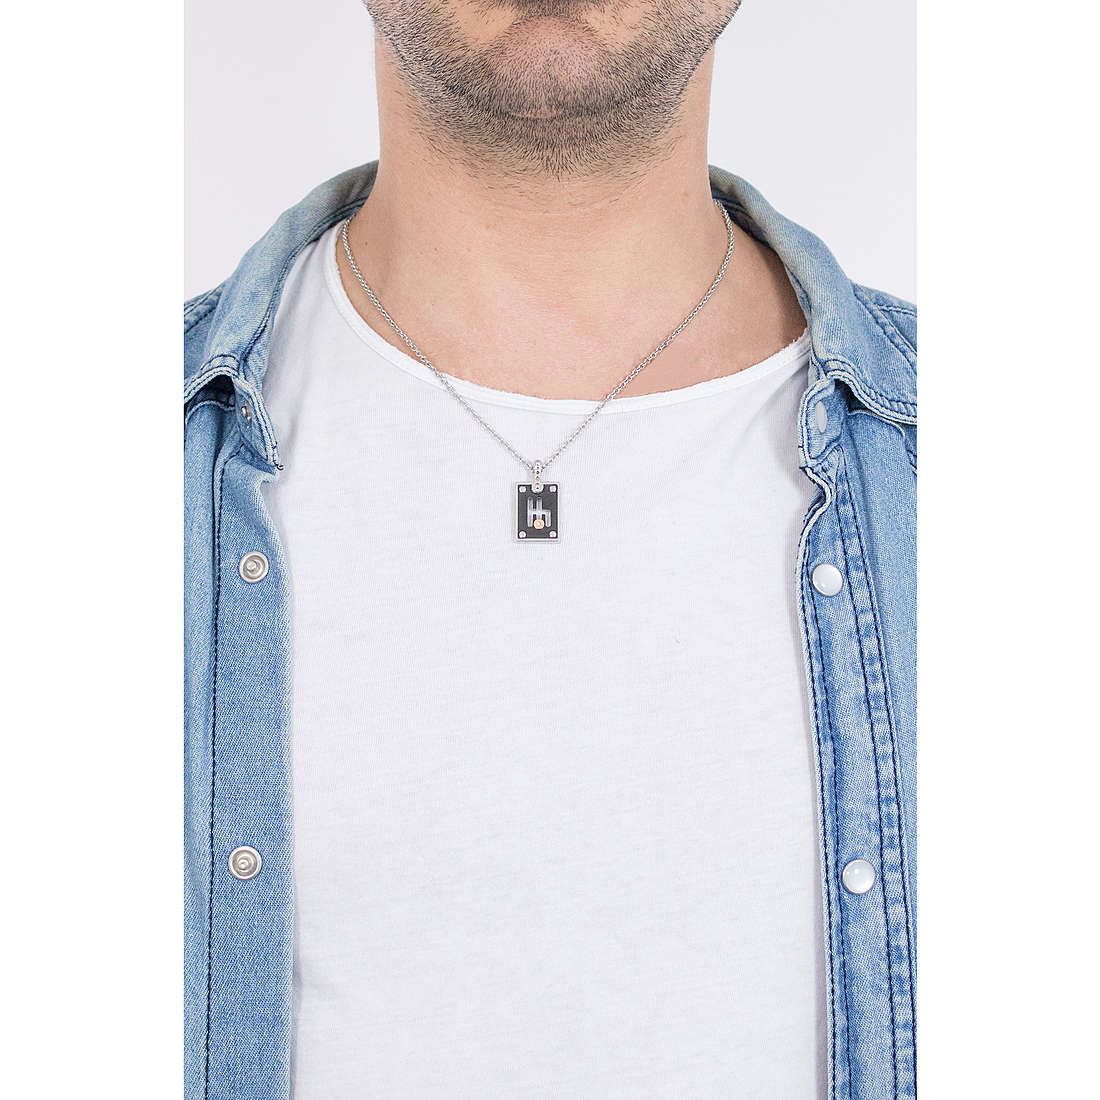 Comete colliers Cambio homme UGL 531 photo wearing